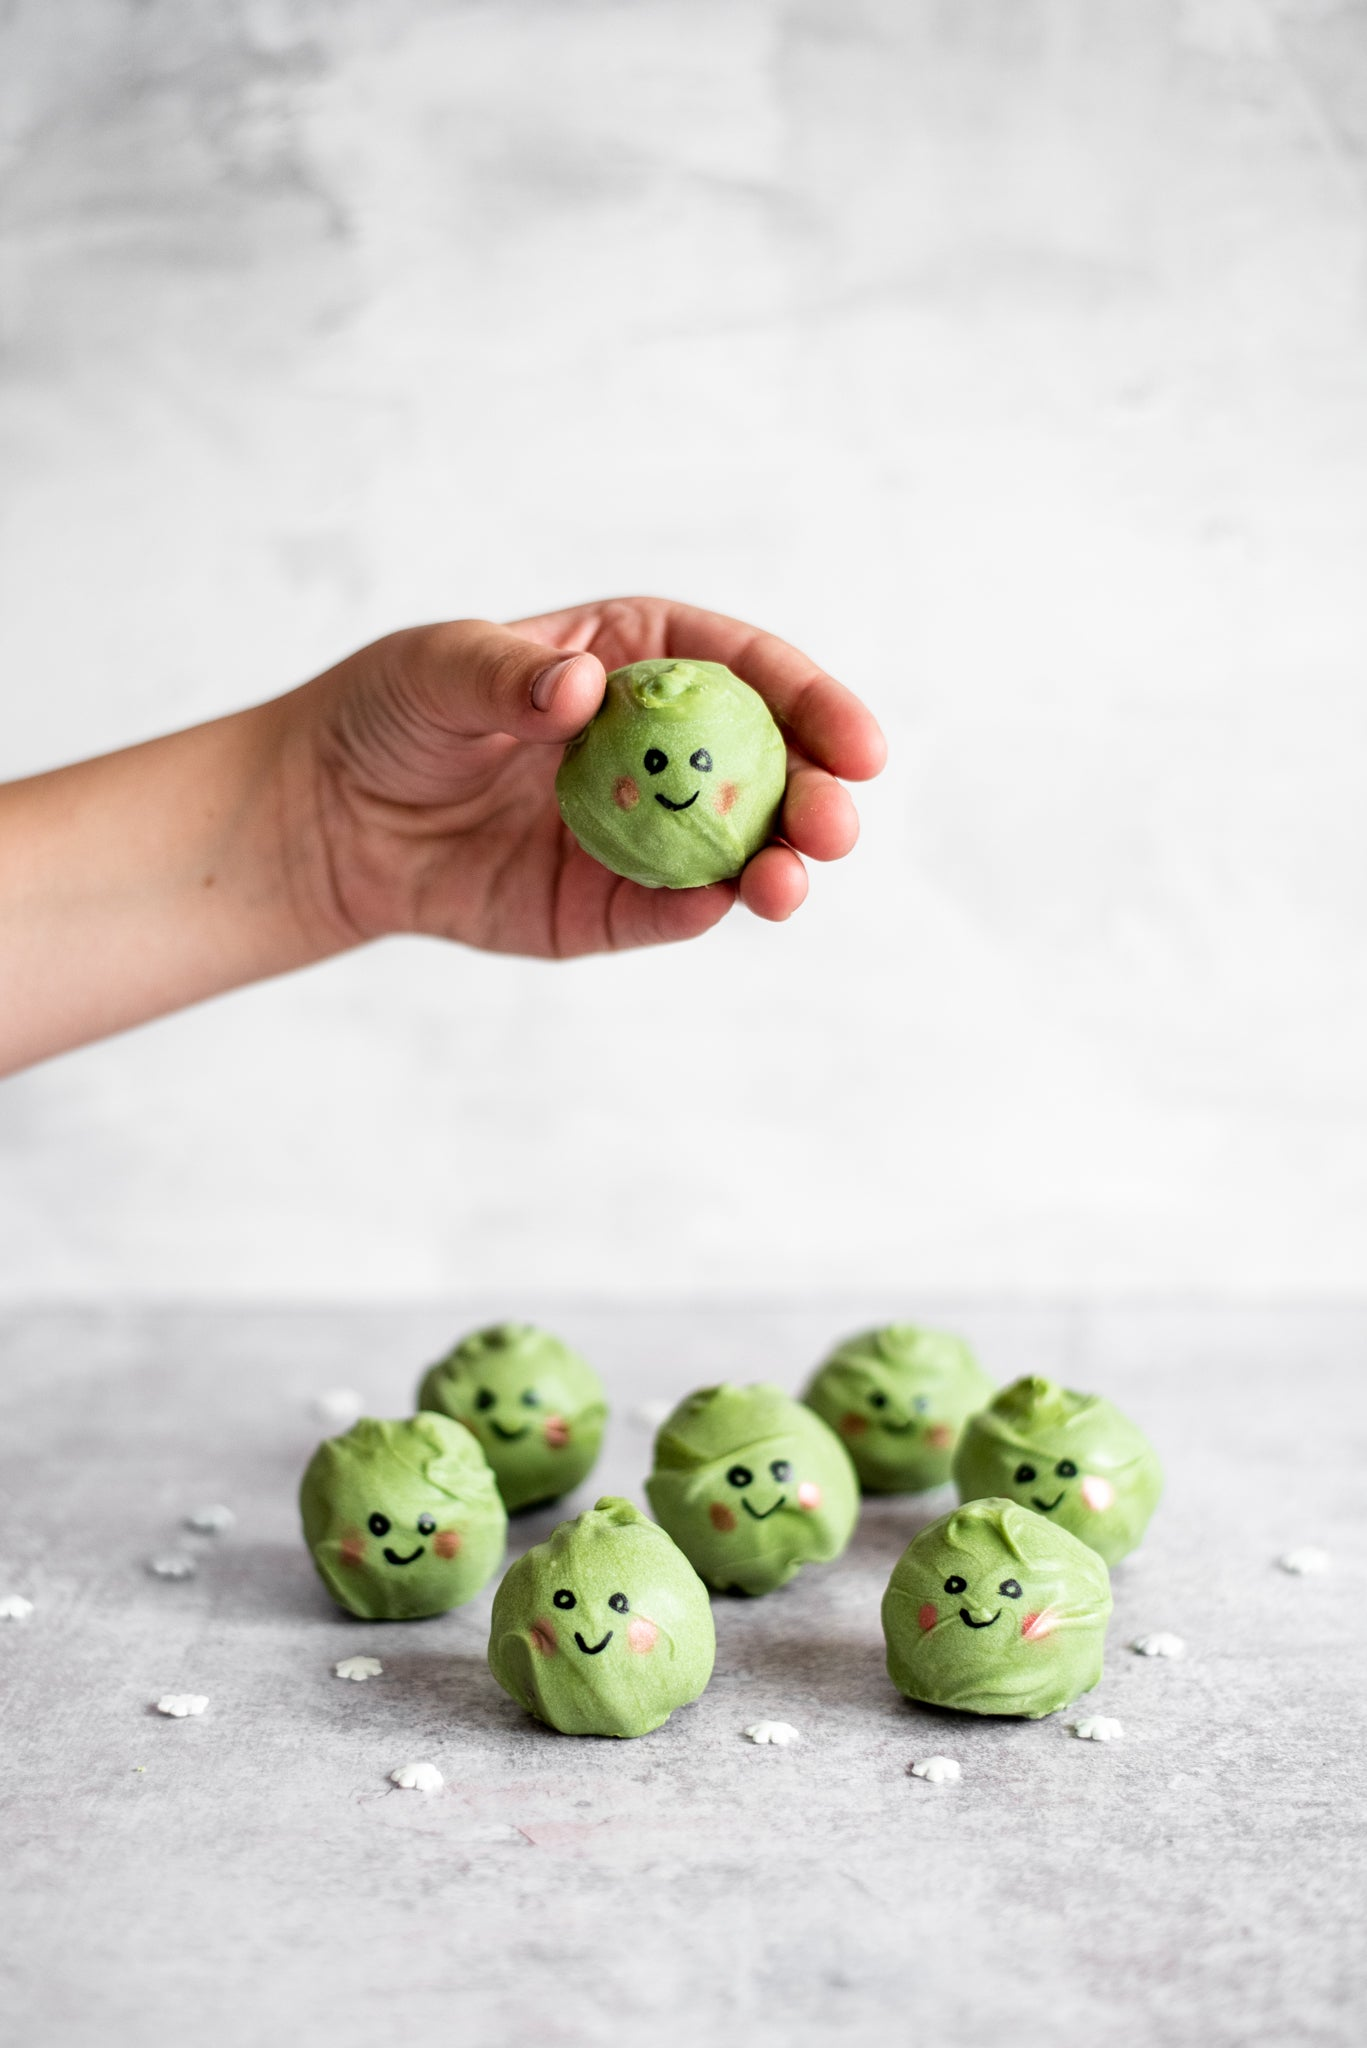 Brussel-Sprout-Cake-Pops-WEB-RES-7.jpg